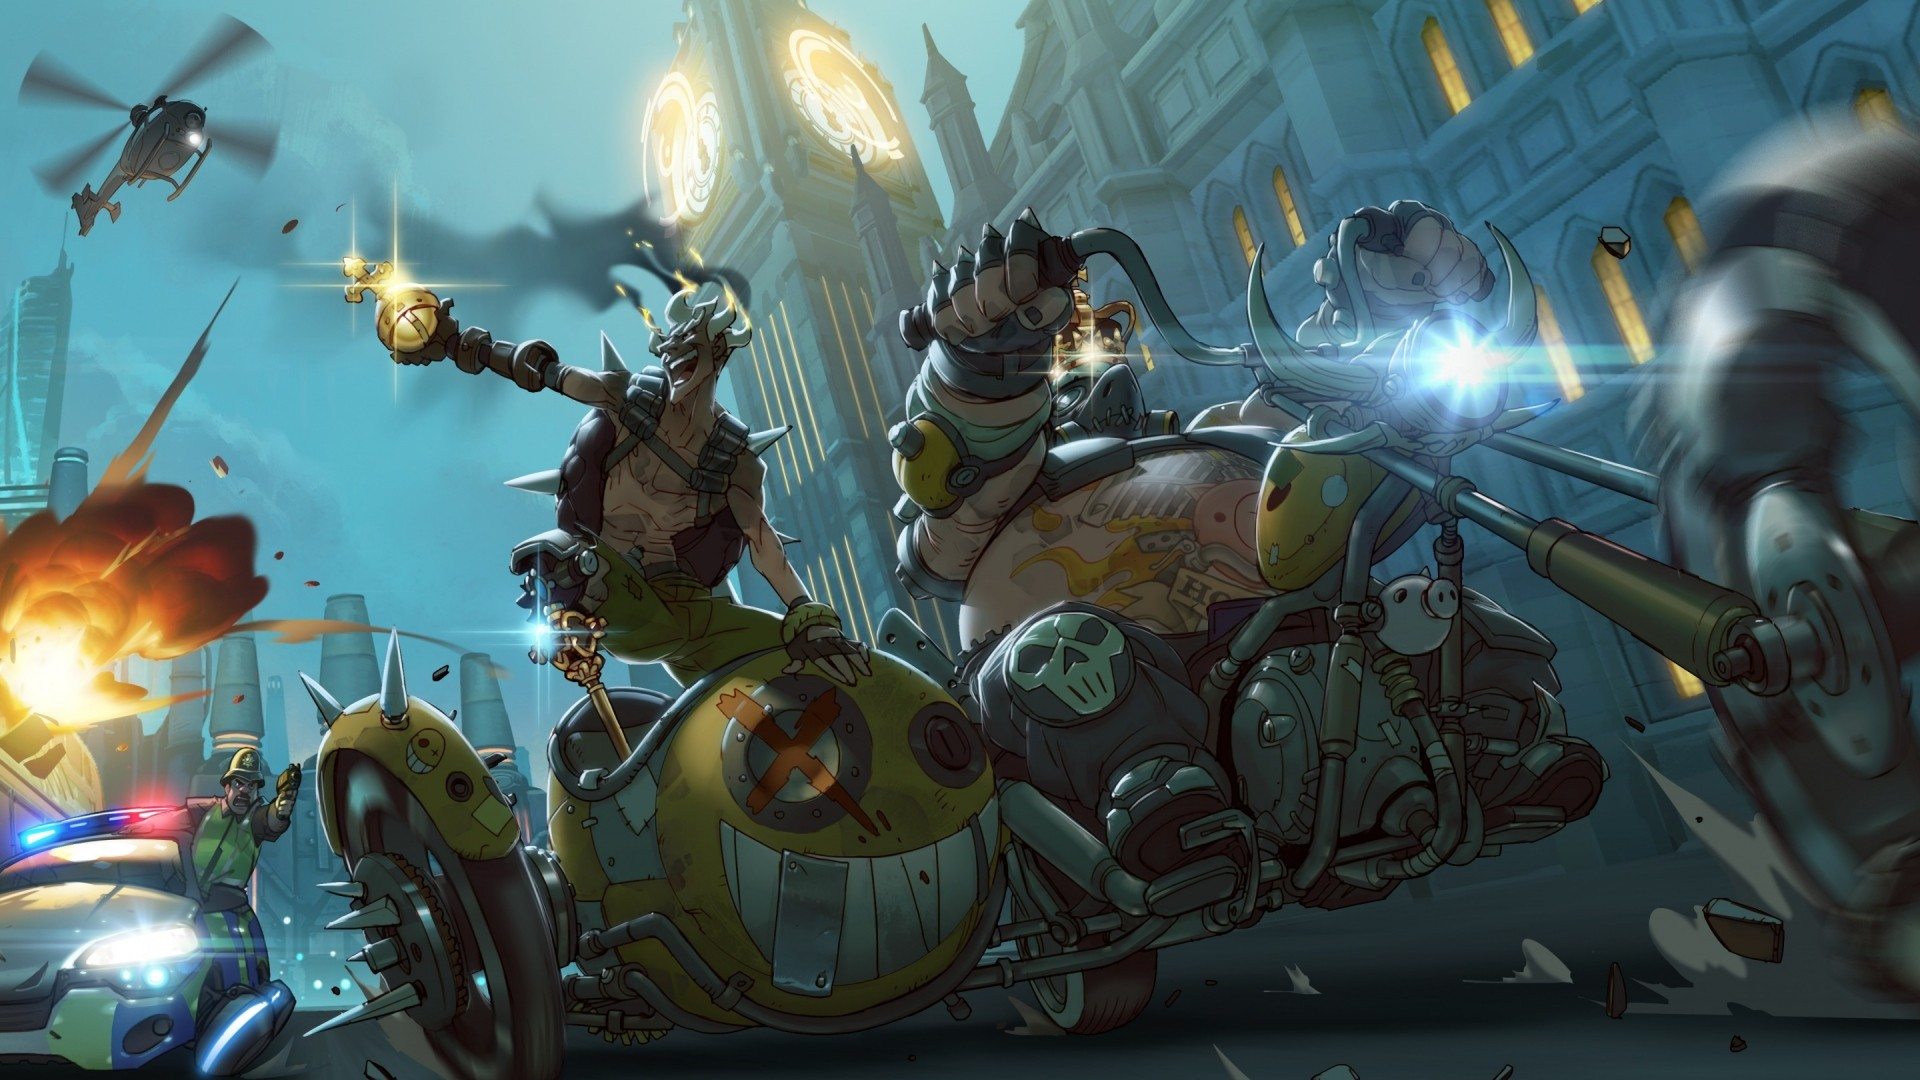 Tank Girl Wallpaper Android Overwatch Wallpaper 1080p 183 ① Download Free Cool High